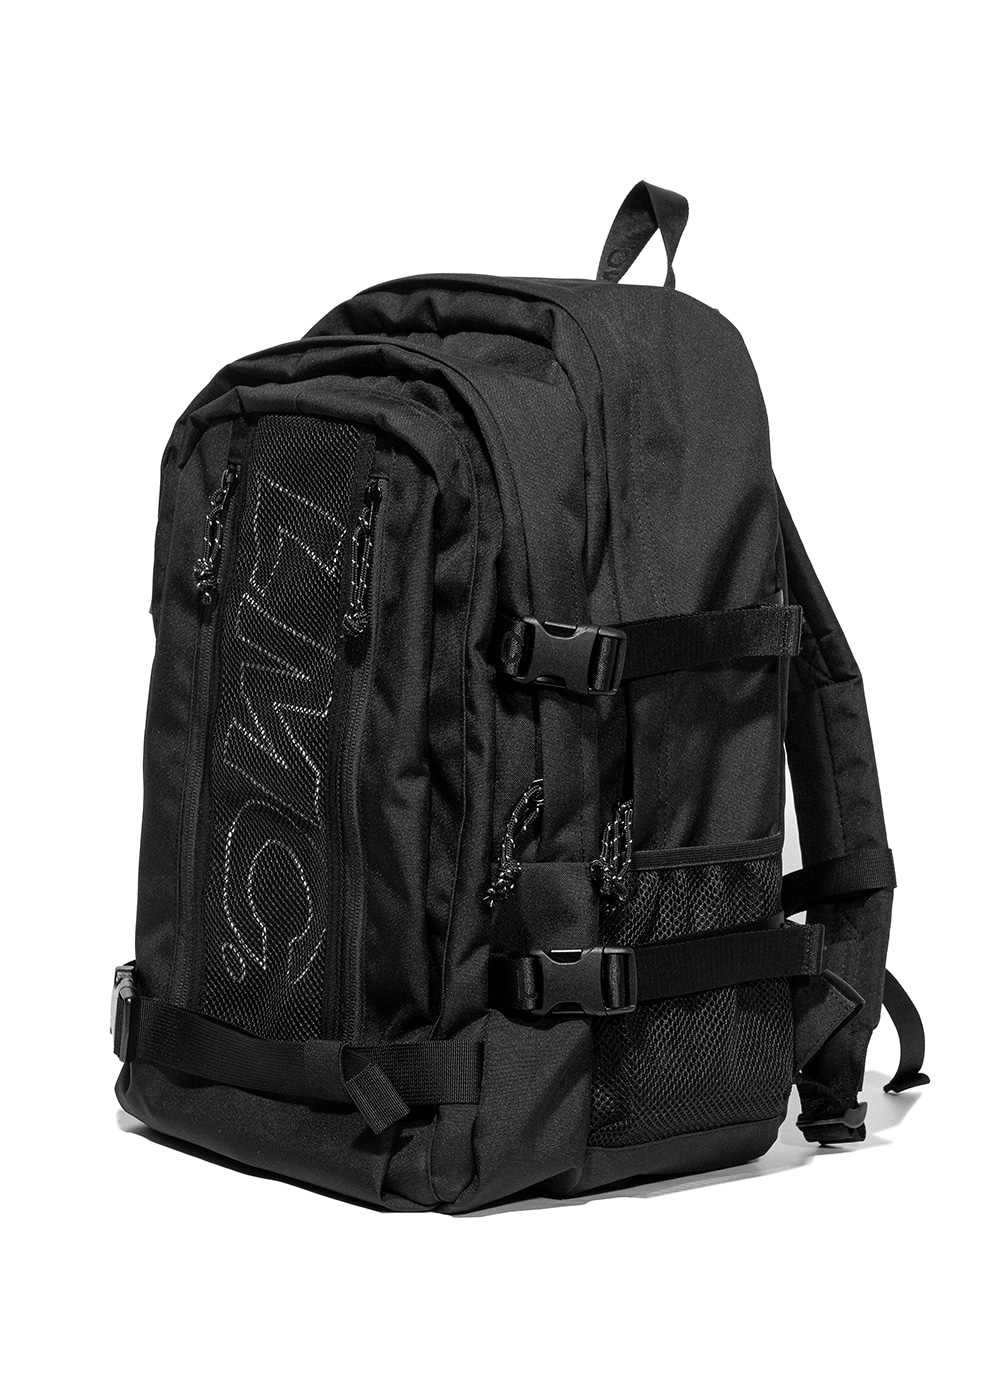 LMC UTILITY BACKPACK black